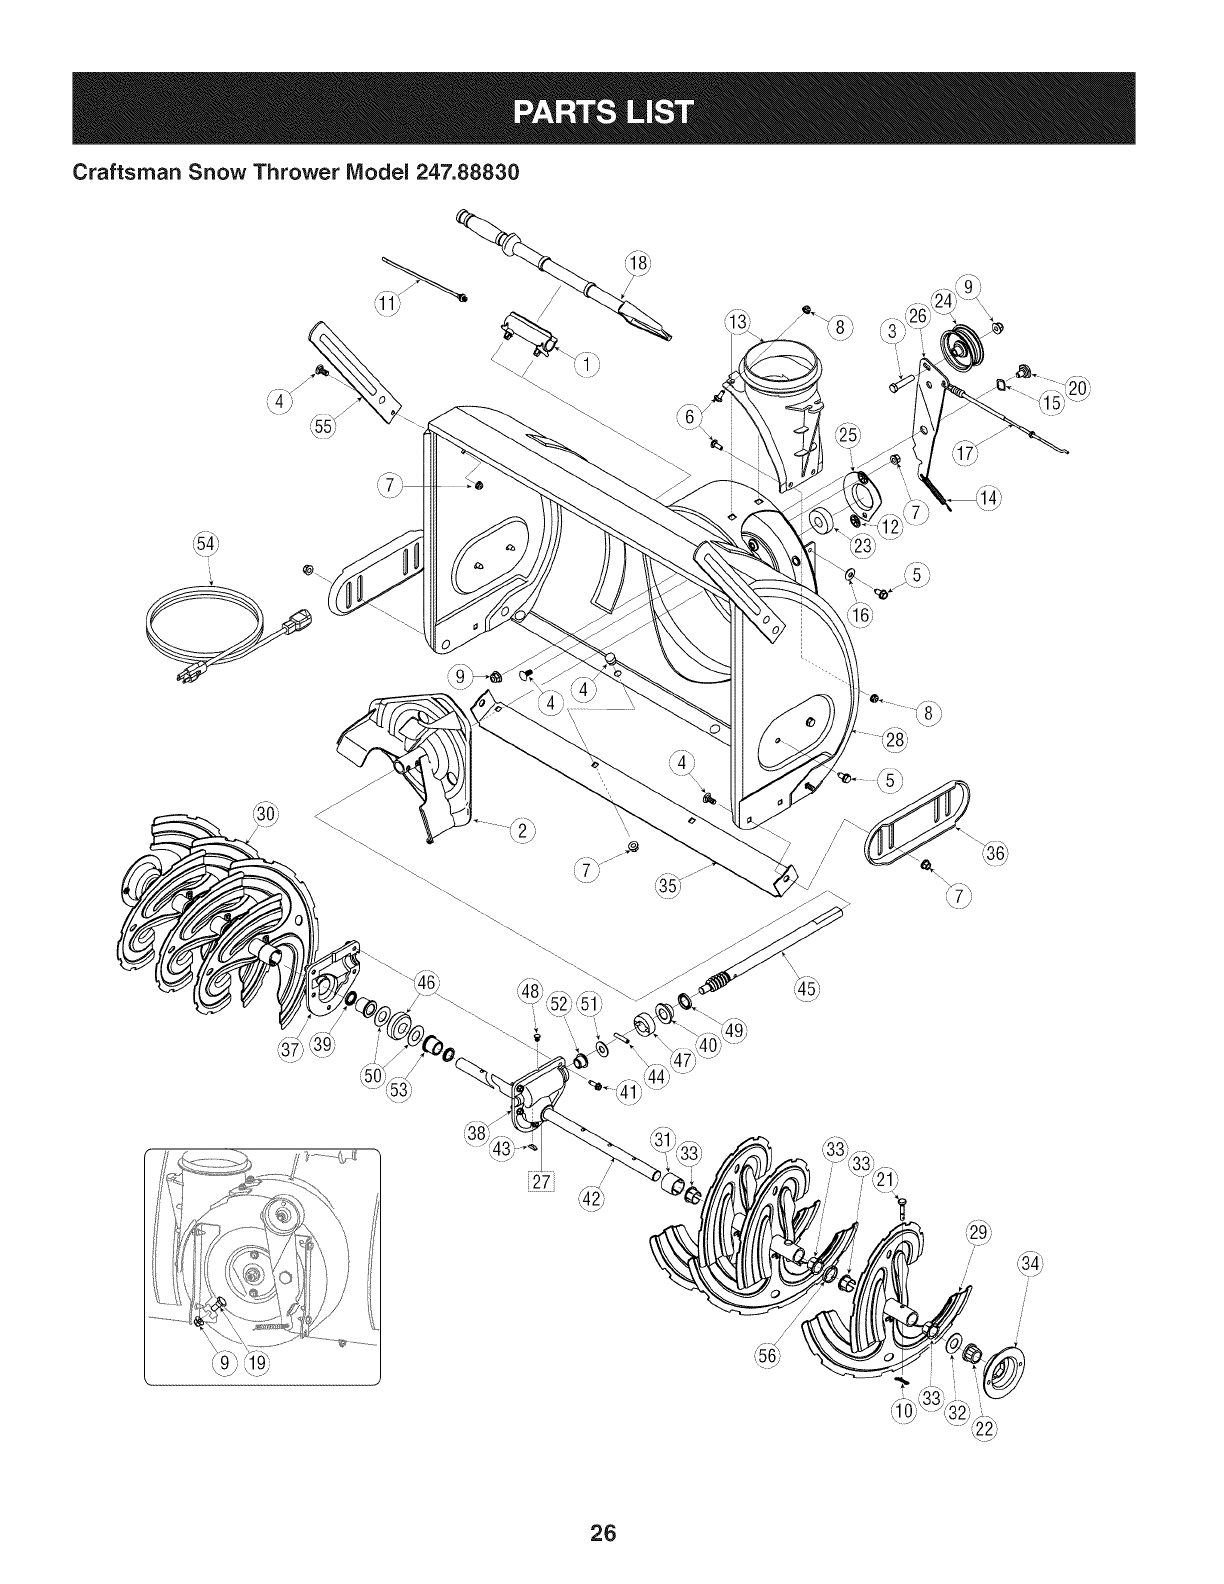 Craftsman 247888300 User Manual SNOW THROWER Manuals And